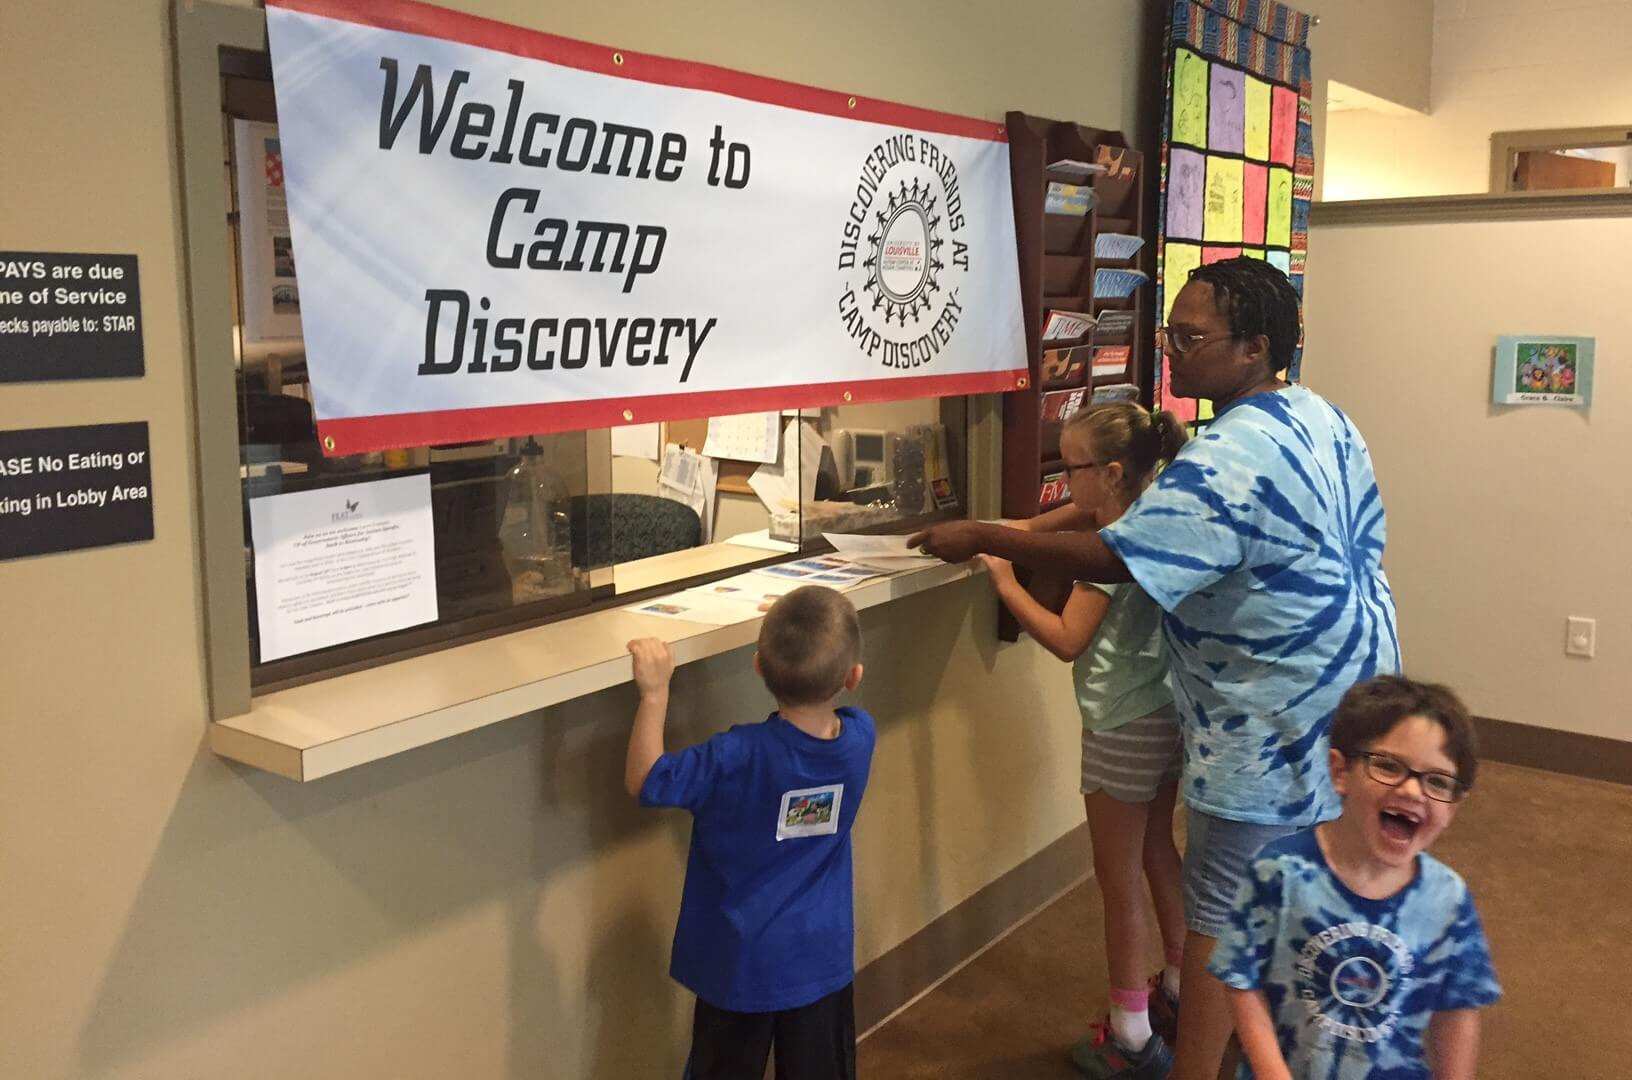 Welcome to Camp Discovery